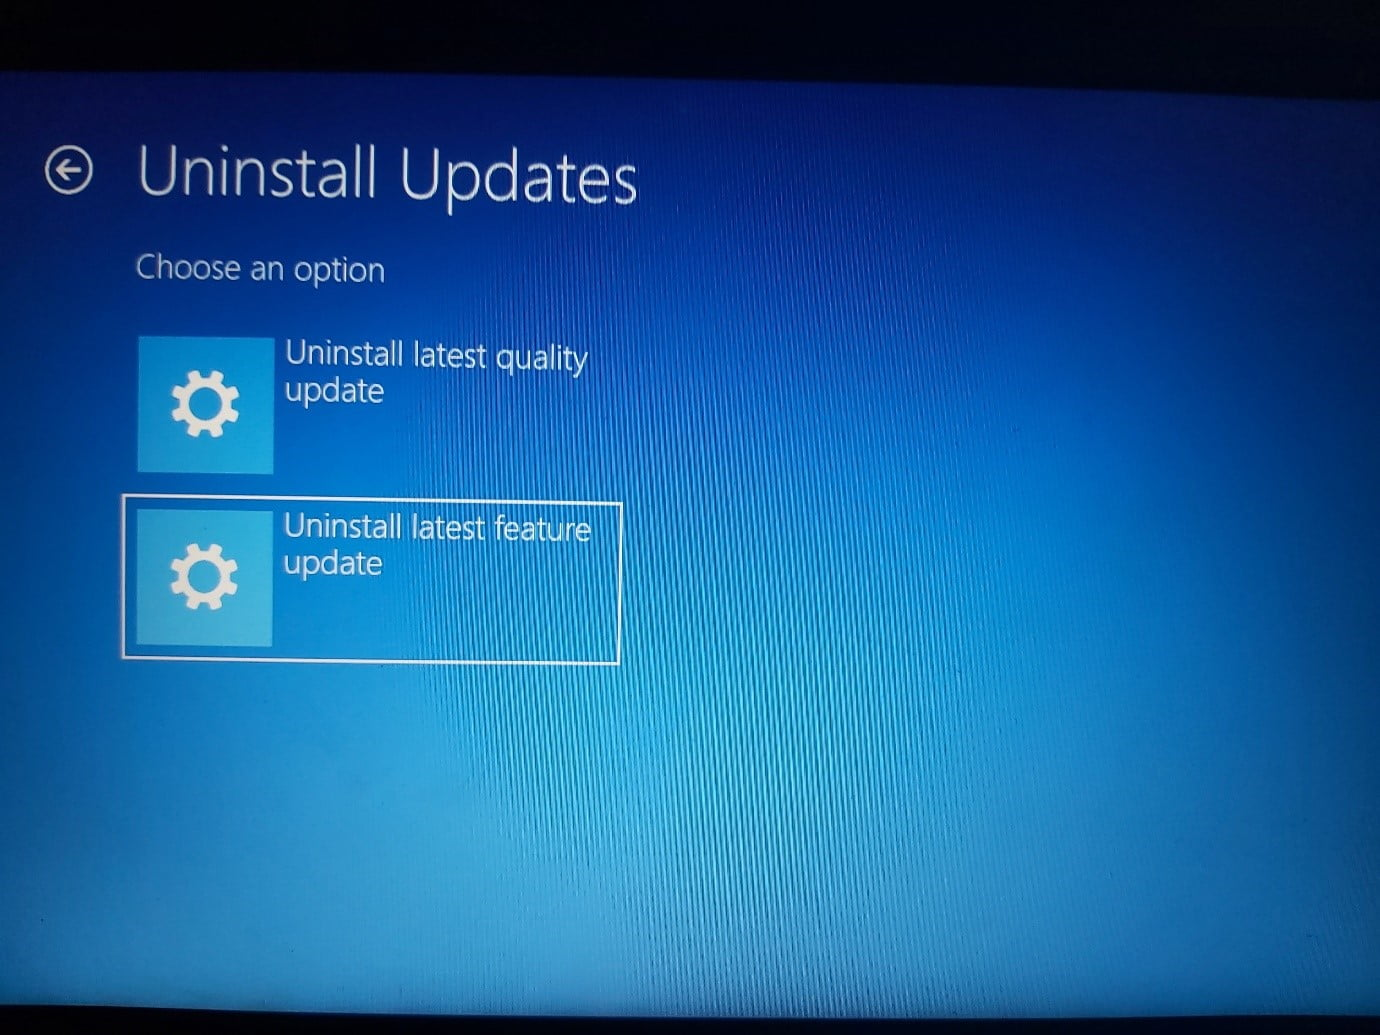 How to uninstall latest feature update on Windows 11?